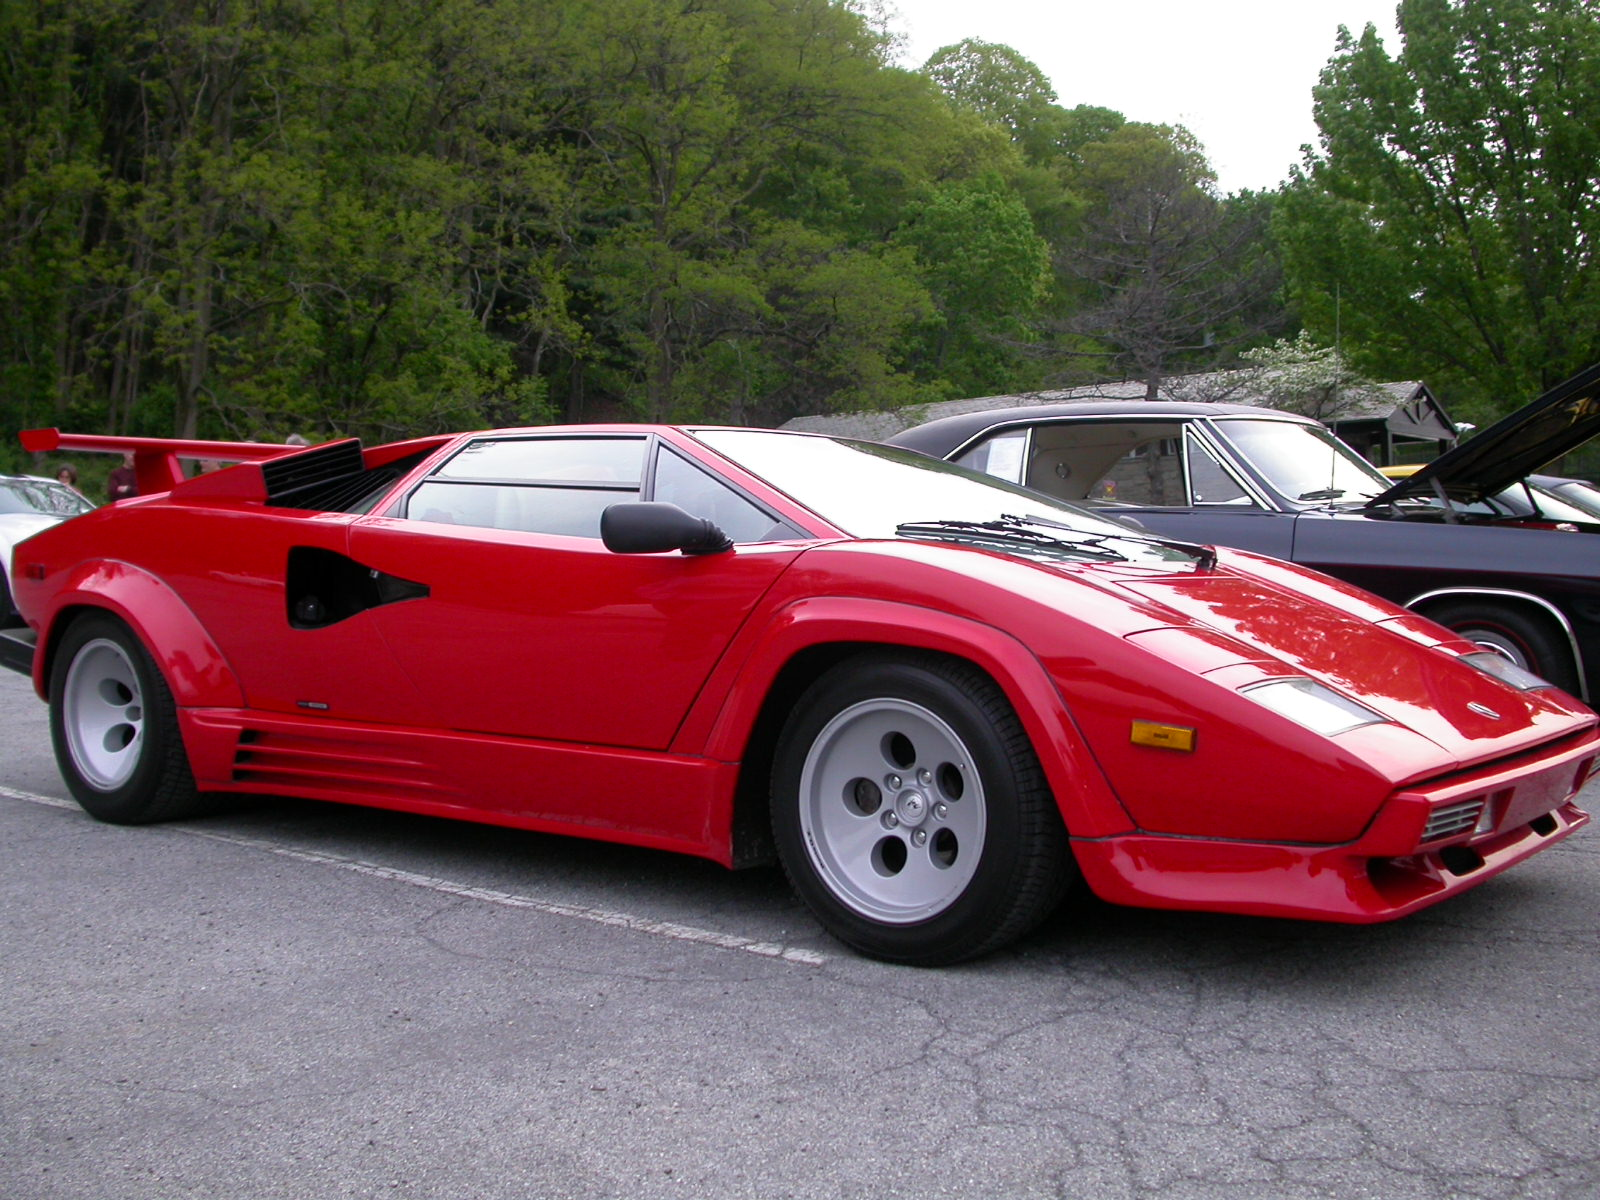 lamborghini countach history photos on better parts ltd. Black Bedroom Furniture Sets. Home Design Ideas